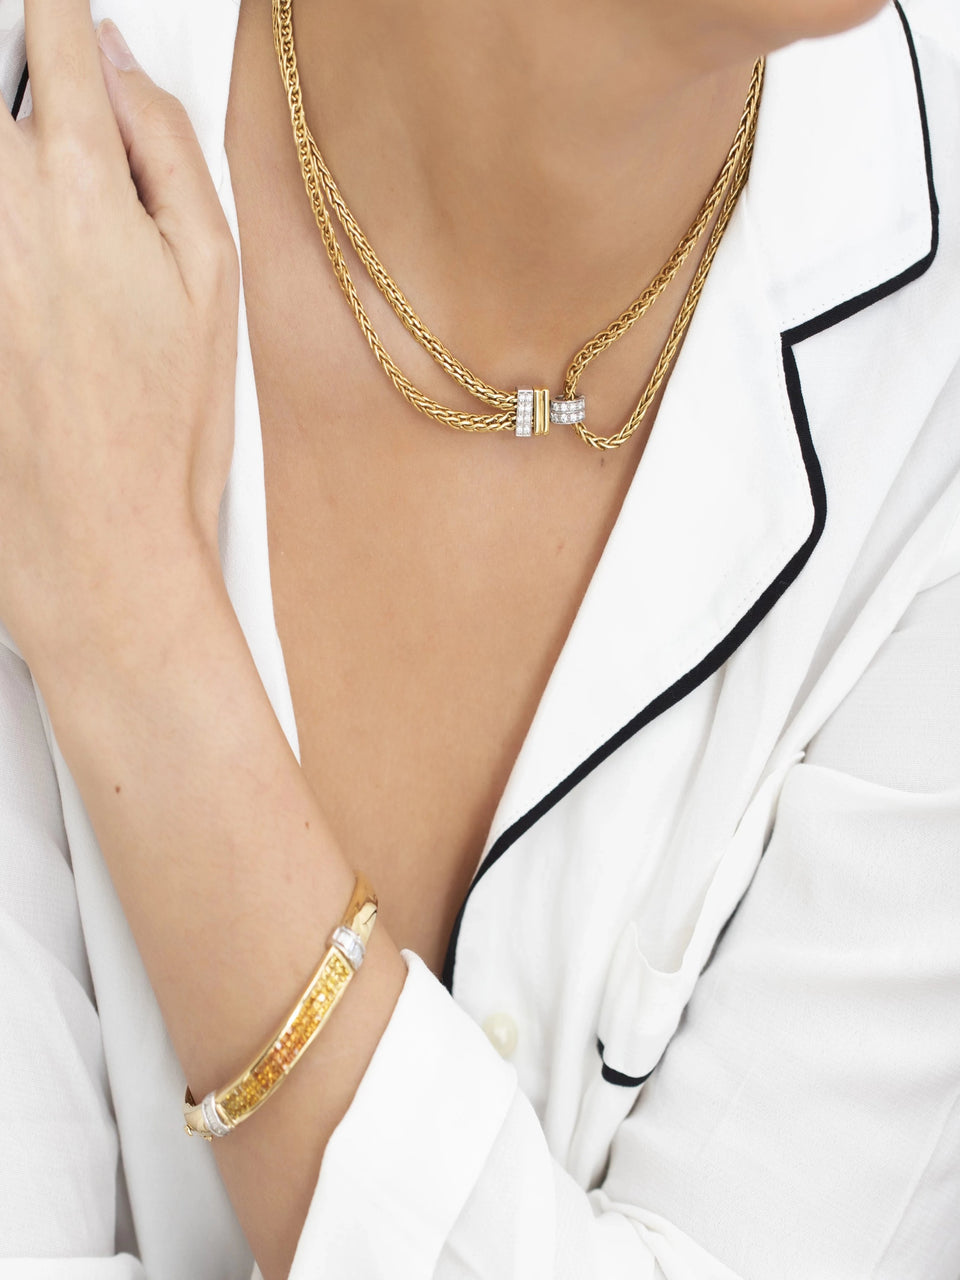 Pomellato Italy, Gold and Diamond Convertible Necklace